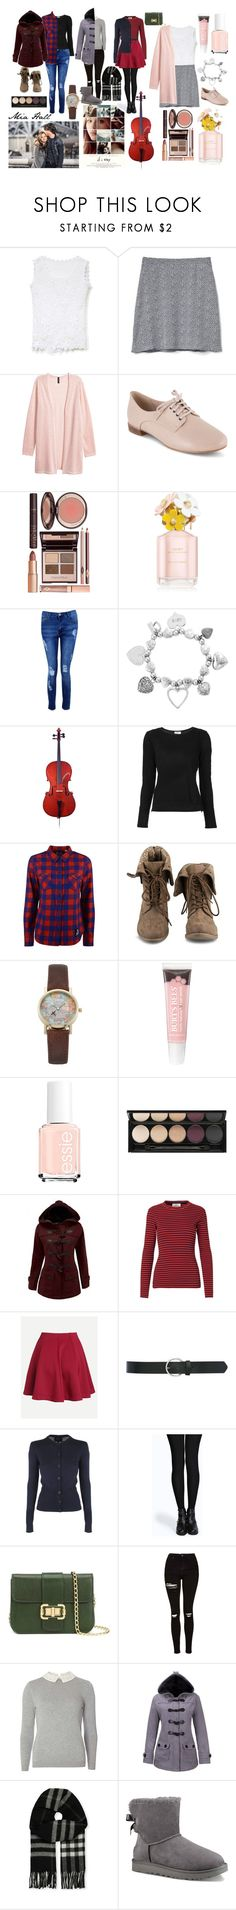 """""""If I Stay - Mia Hall"""" by selina02wang ❤ liked on Polyvore featuring Chicwish, Gap, Clarks, Charlotte Tilbury, Marc Jacobs, Boohoo, ChloBo, windsor., Frame and Levi's"""